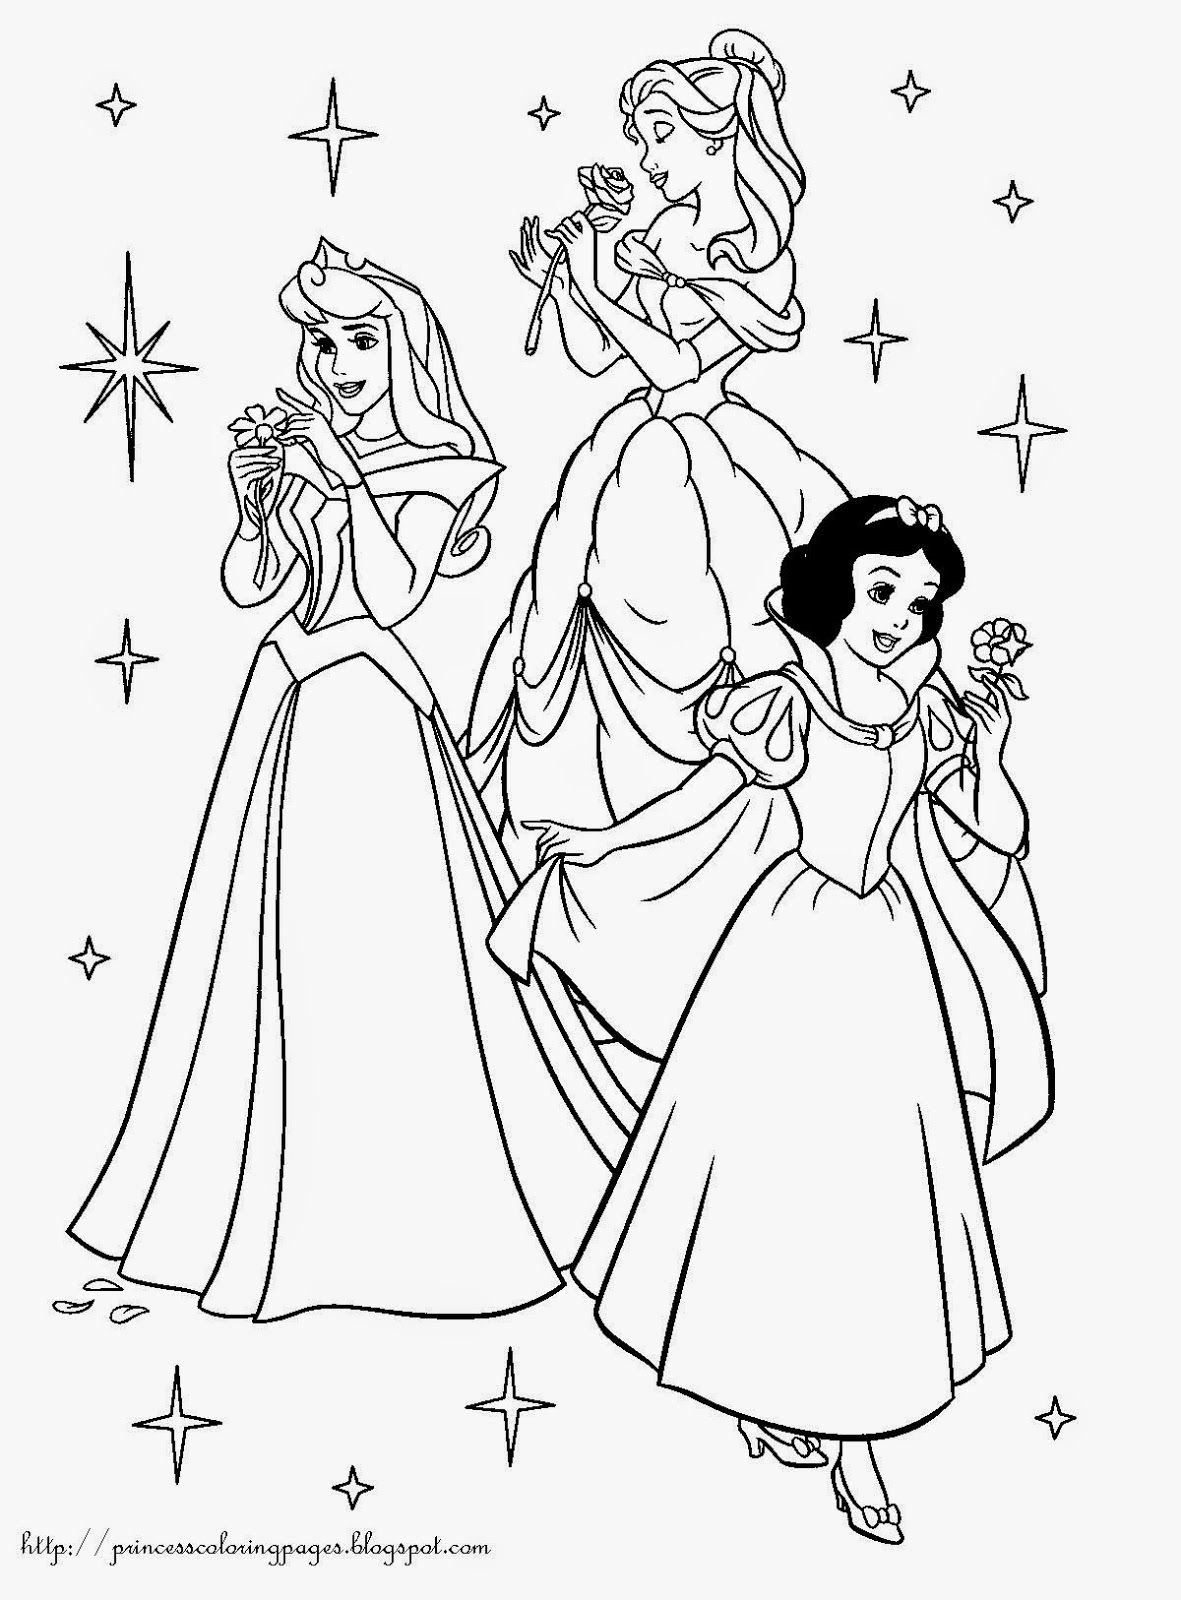 Dornröschen Disney Aurora Ausmalbilder : Princess Coloring Pages Coloring Pages Pinterest